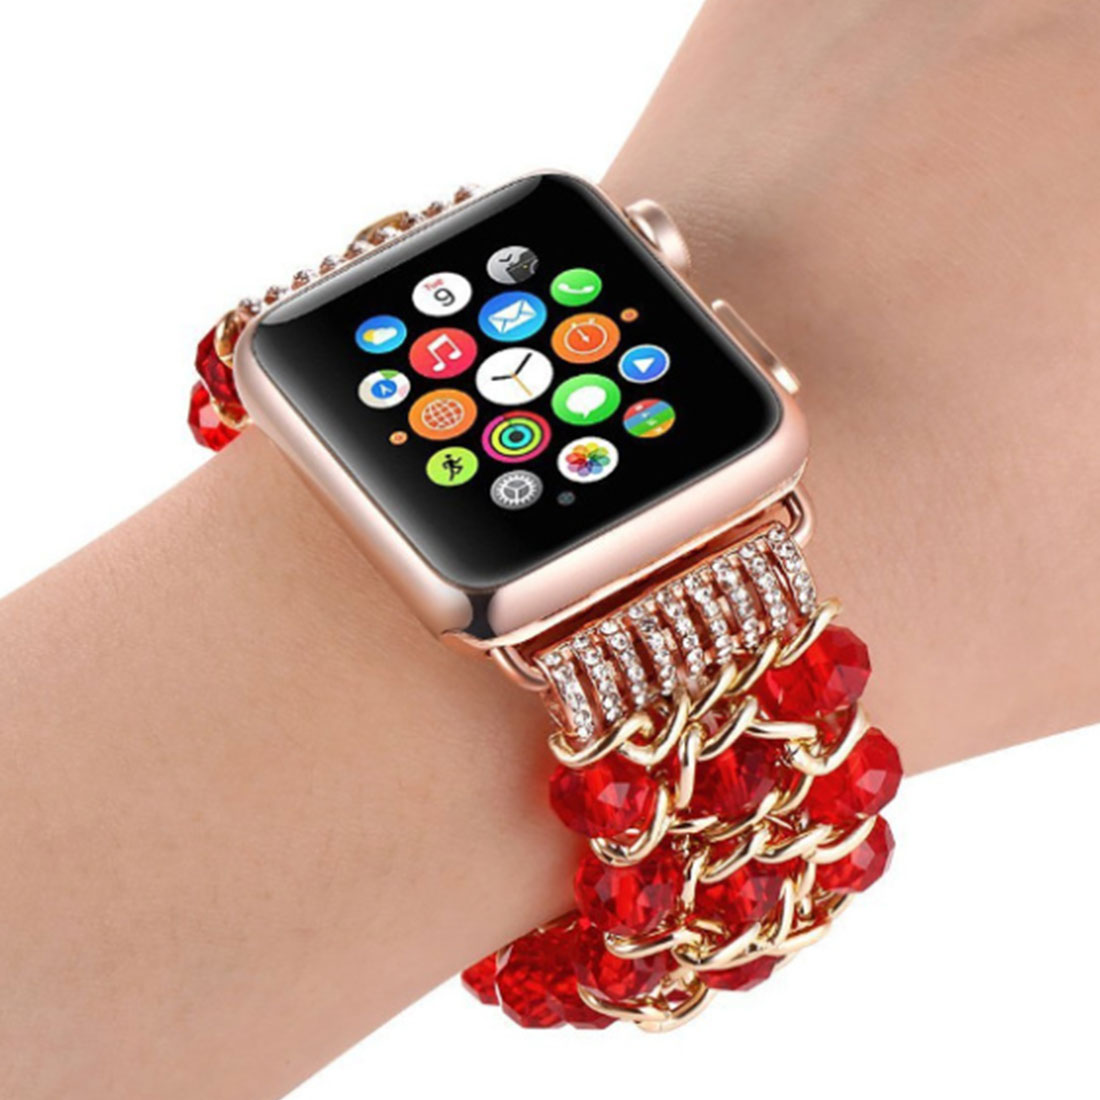 New Woman Jewelry Strap band for Apple Watch Hot 38mm 42mm Luminous Pearl Bracelet for iWatch Series 4 3 2 1 Wristband in Watchbands from Watches